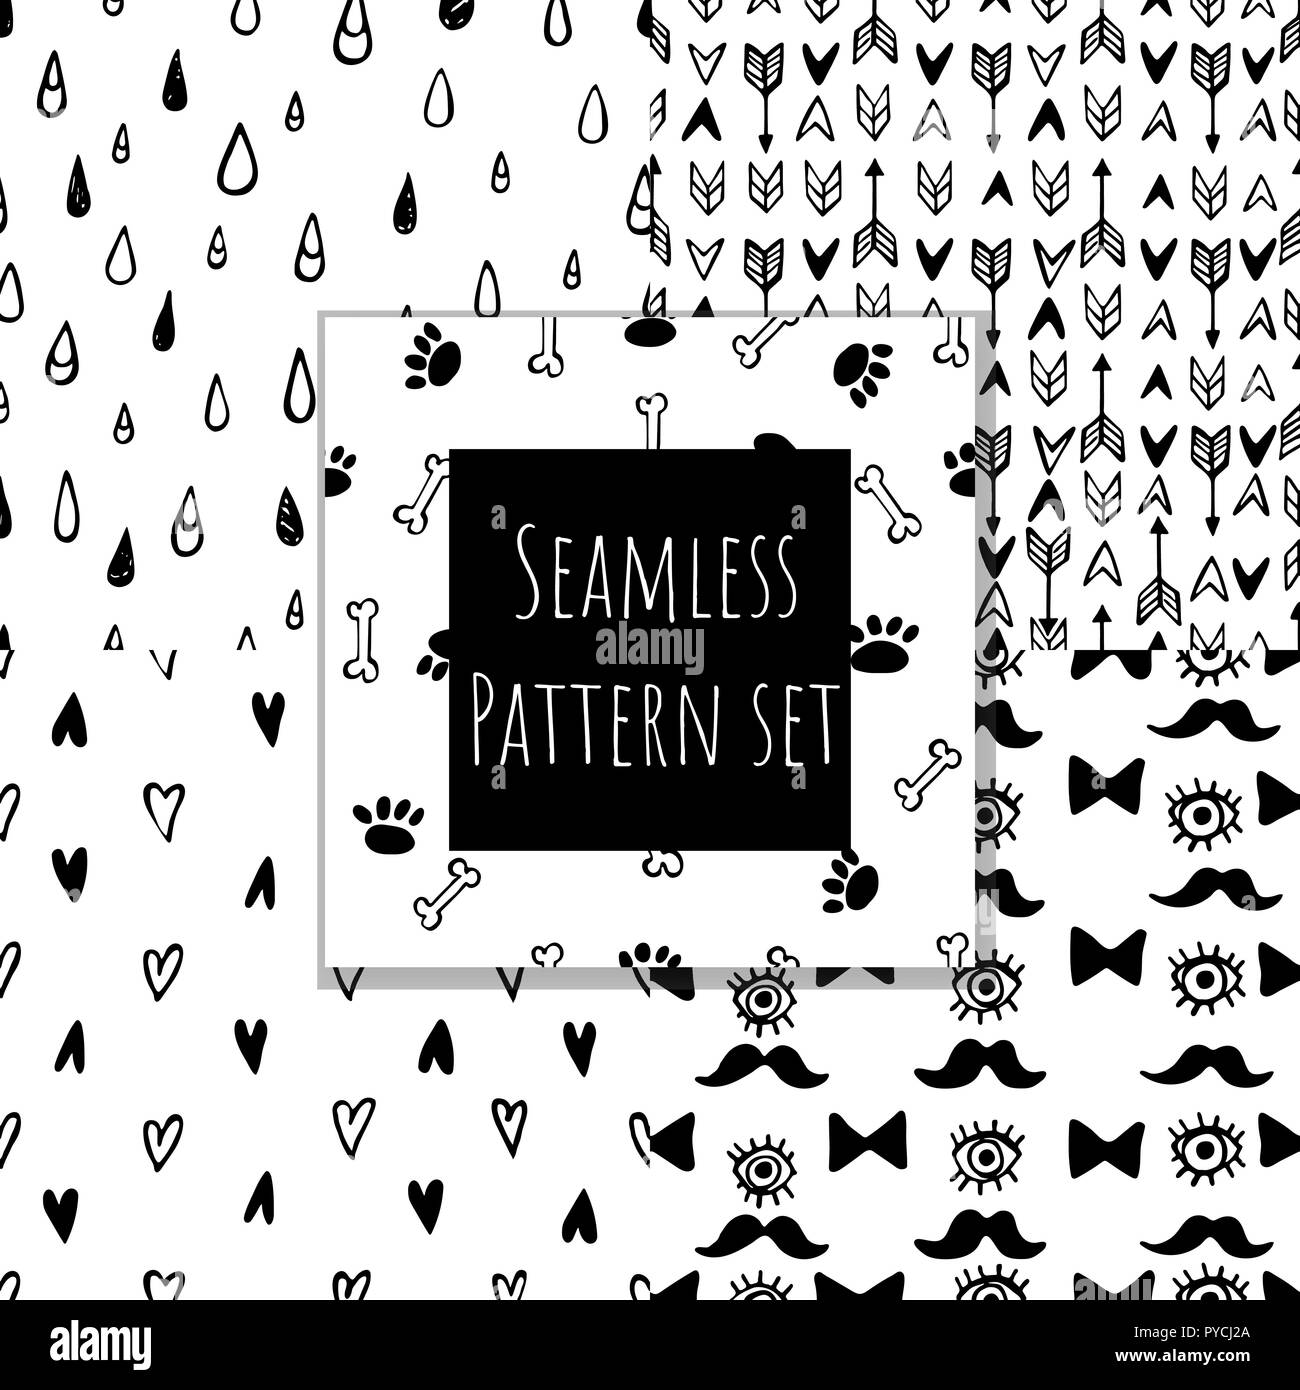 Monochrome seamless pattern collection. Hand drawn vector doodle backgrounds set. - Stock Image